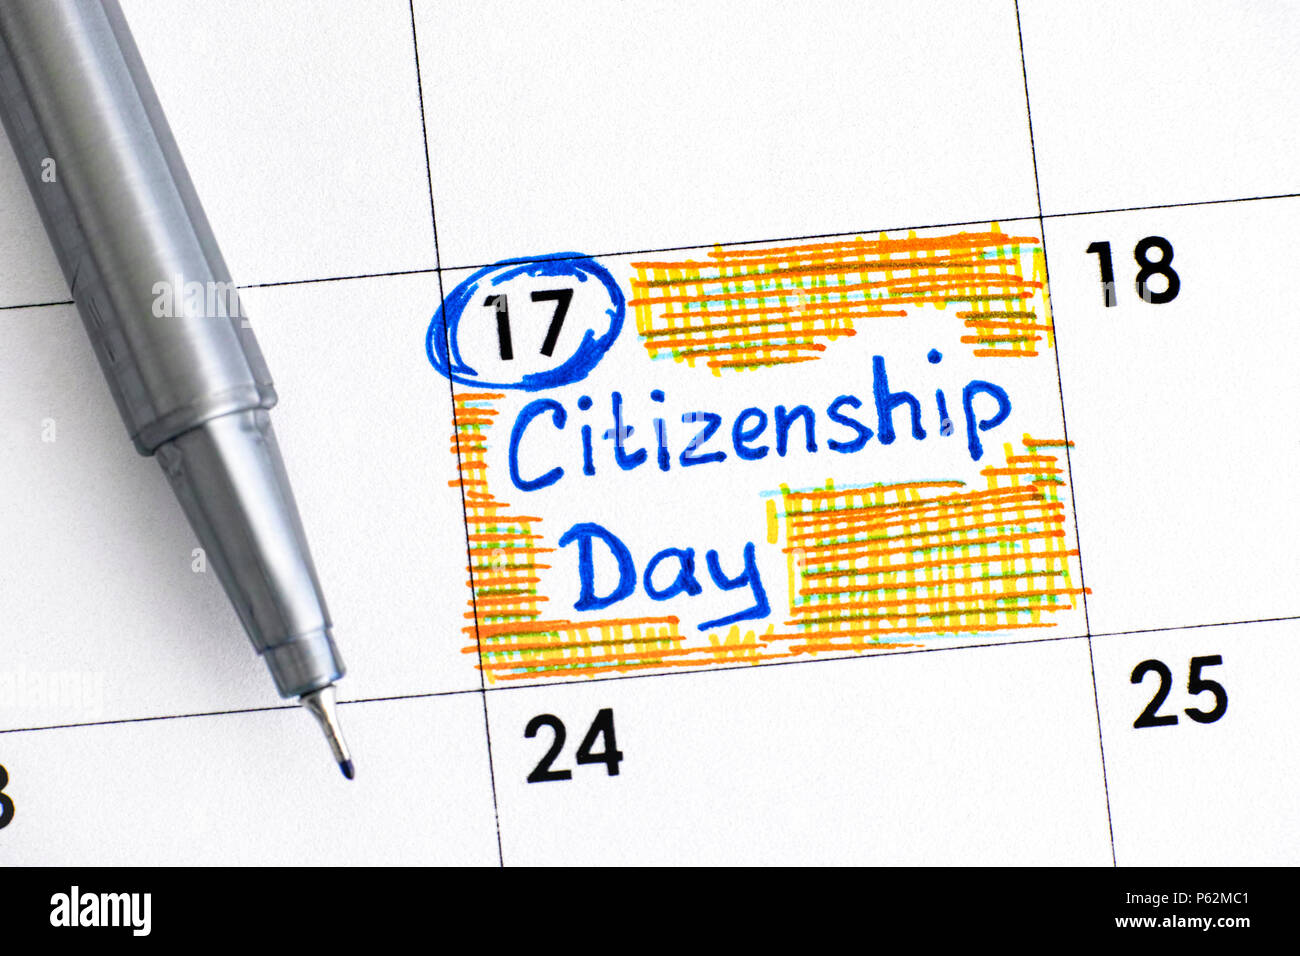 Reminder Citizenship Day in calendar with pen. Close-up. - Stock Image